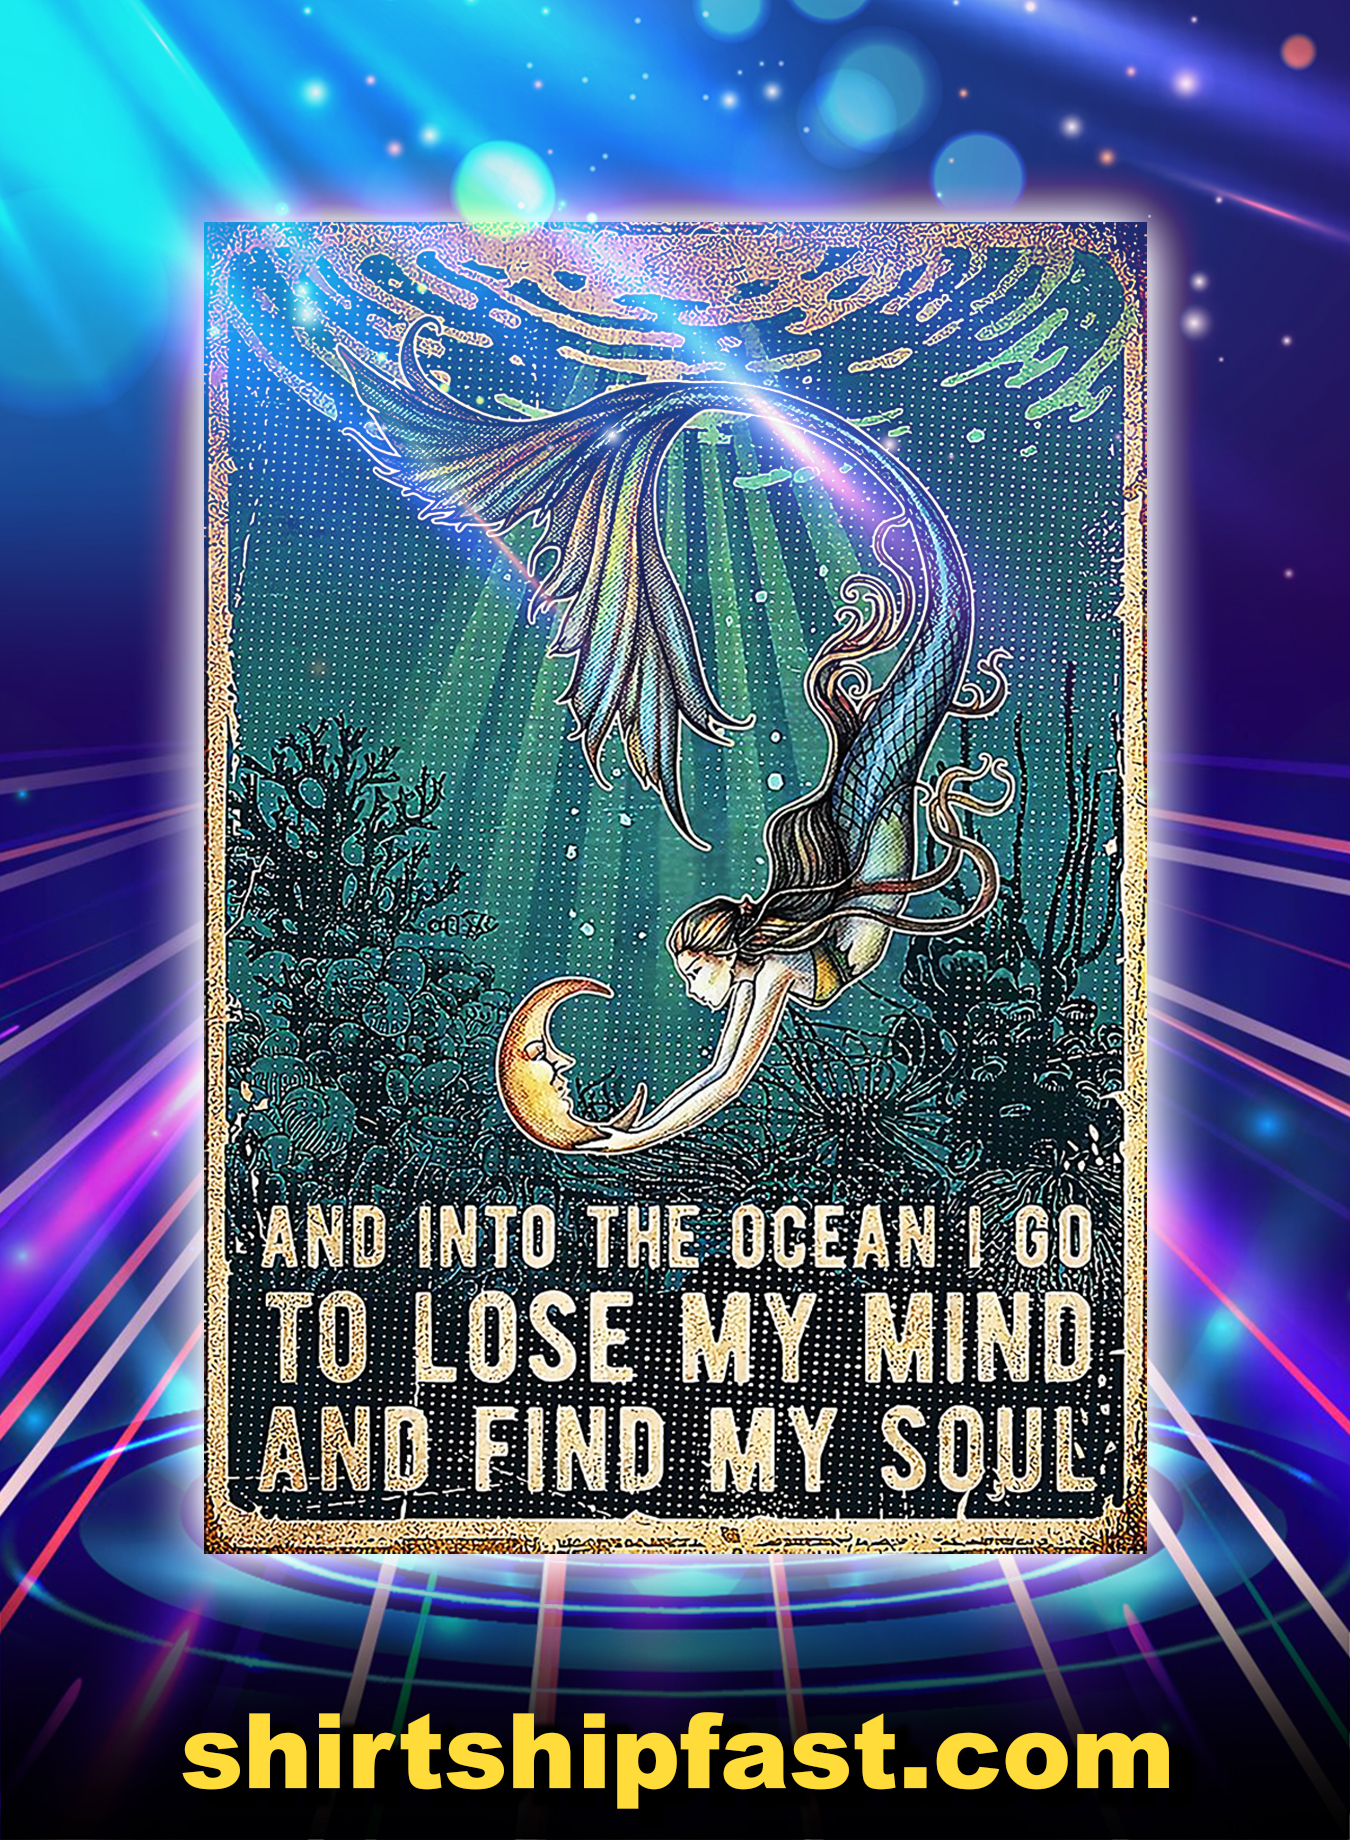 Mermaid and into the ocean i go to lose my mind and find my soul poster - A3